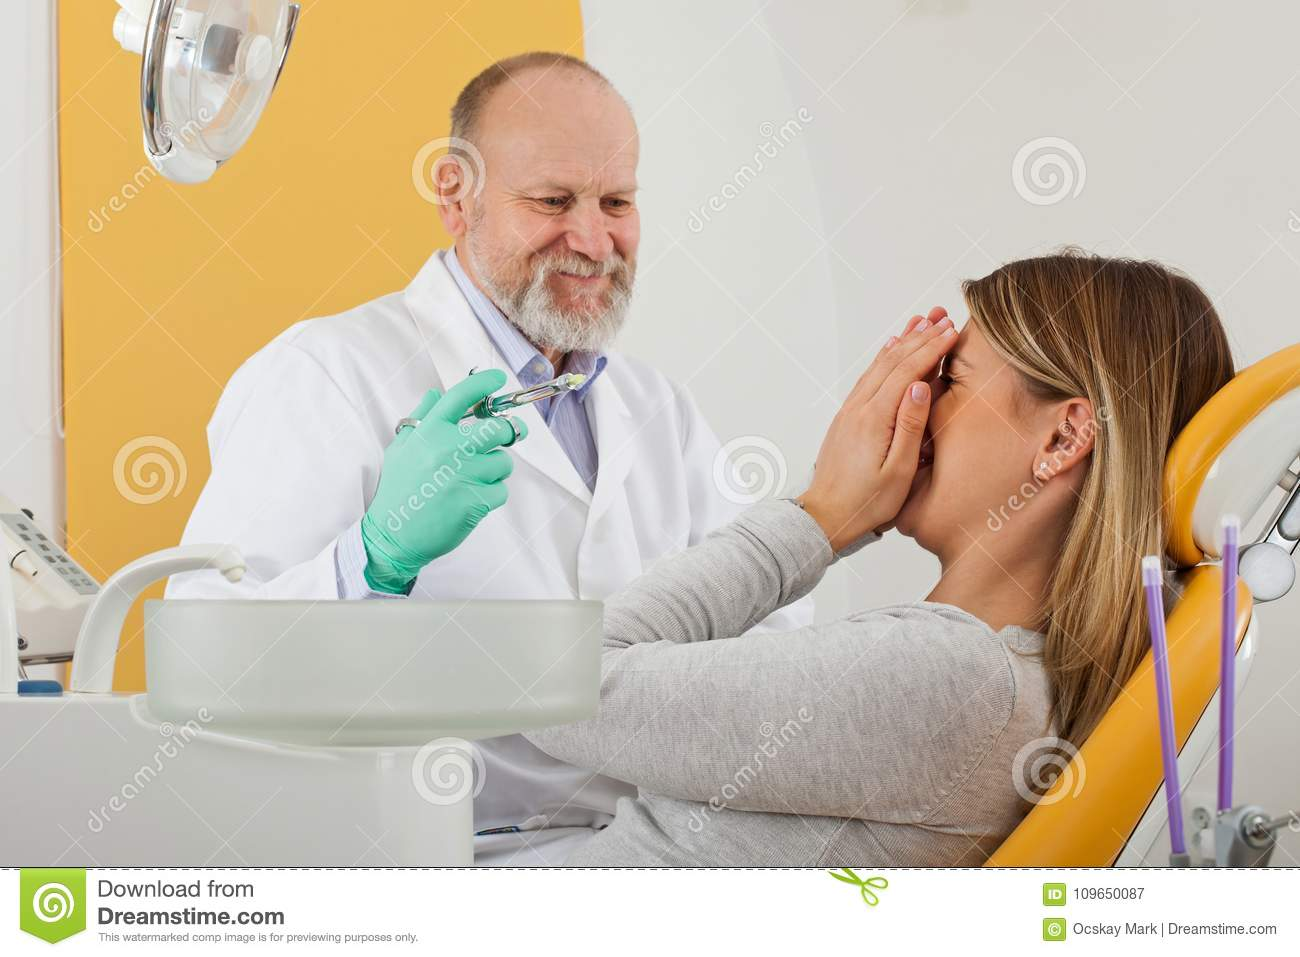 Scared Patient Before Dental Anesthesia Stock Image - Image of